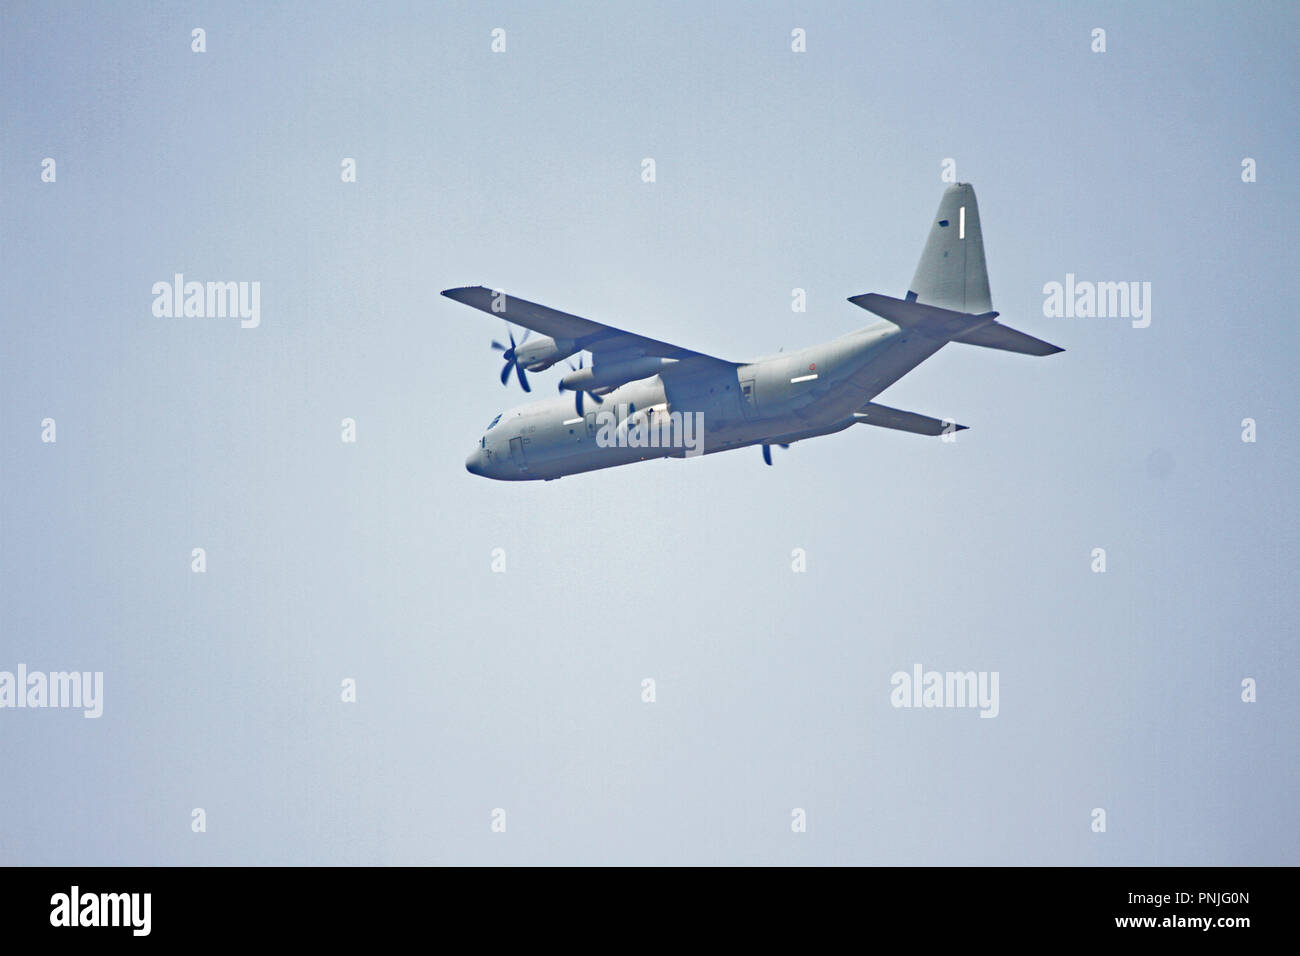 Italian military transport plane or aircraft flying low in the sky in summer in Italy with identifying marks covered over Stock Photo